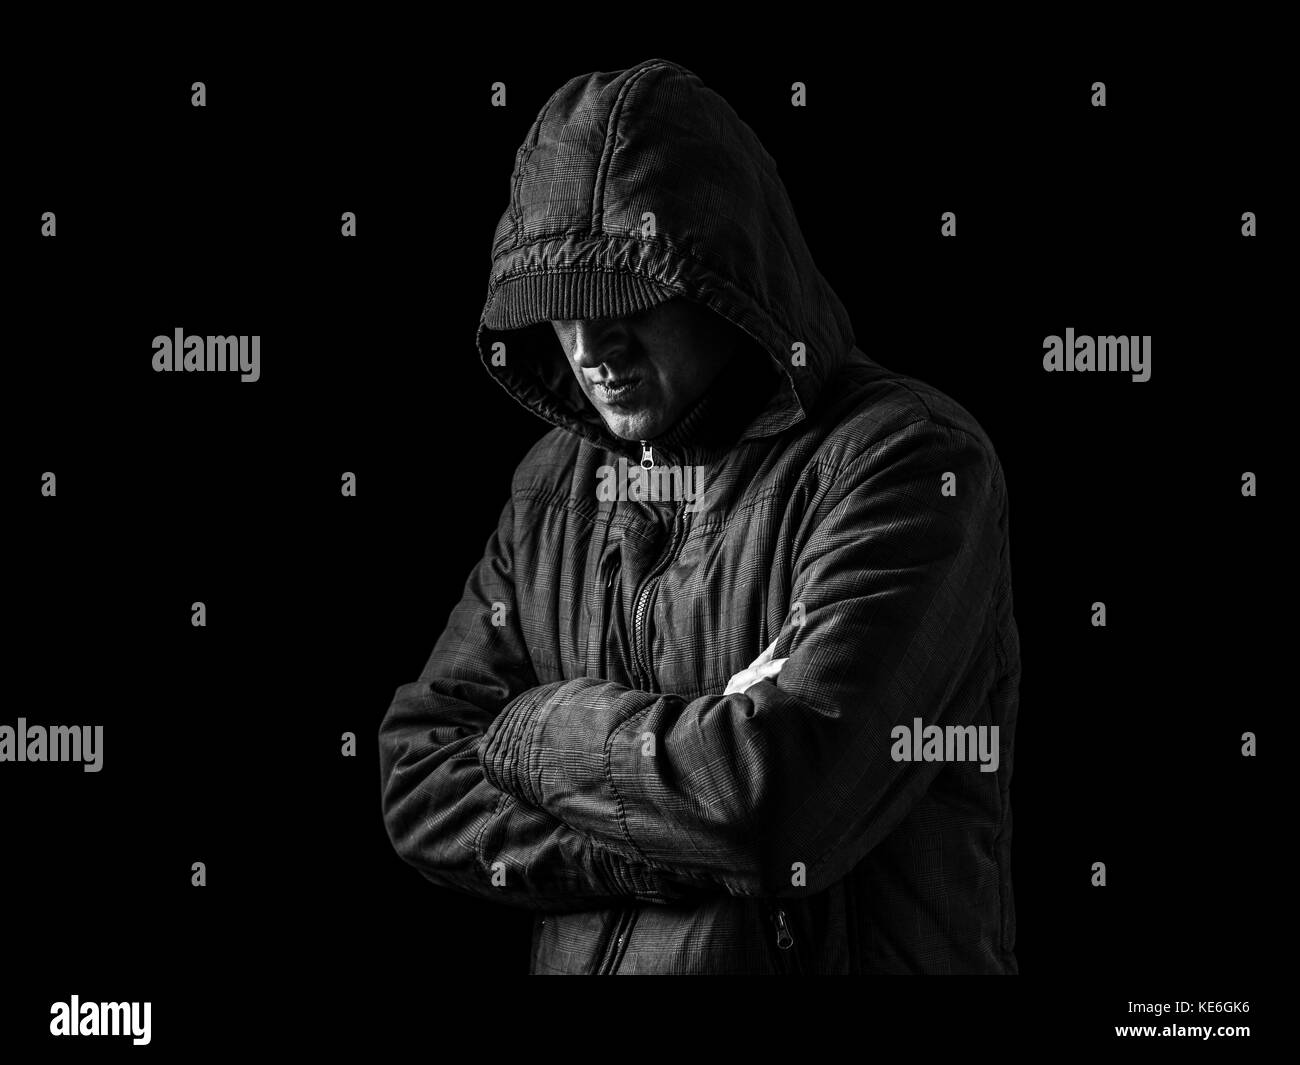 Lonely, depressed, fragile man hiding face, arms crossed, standing in the darkness. Low key, black background / - Stock Image